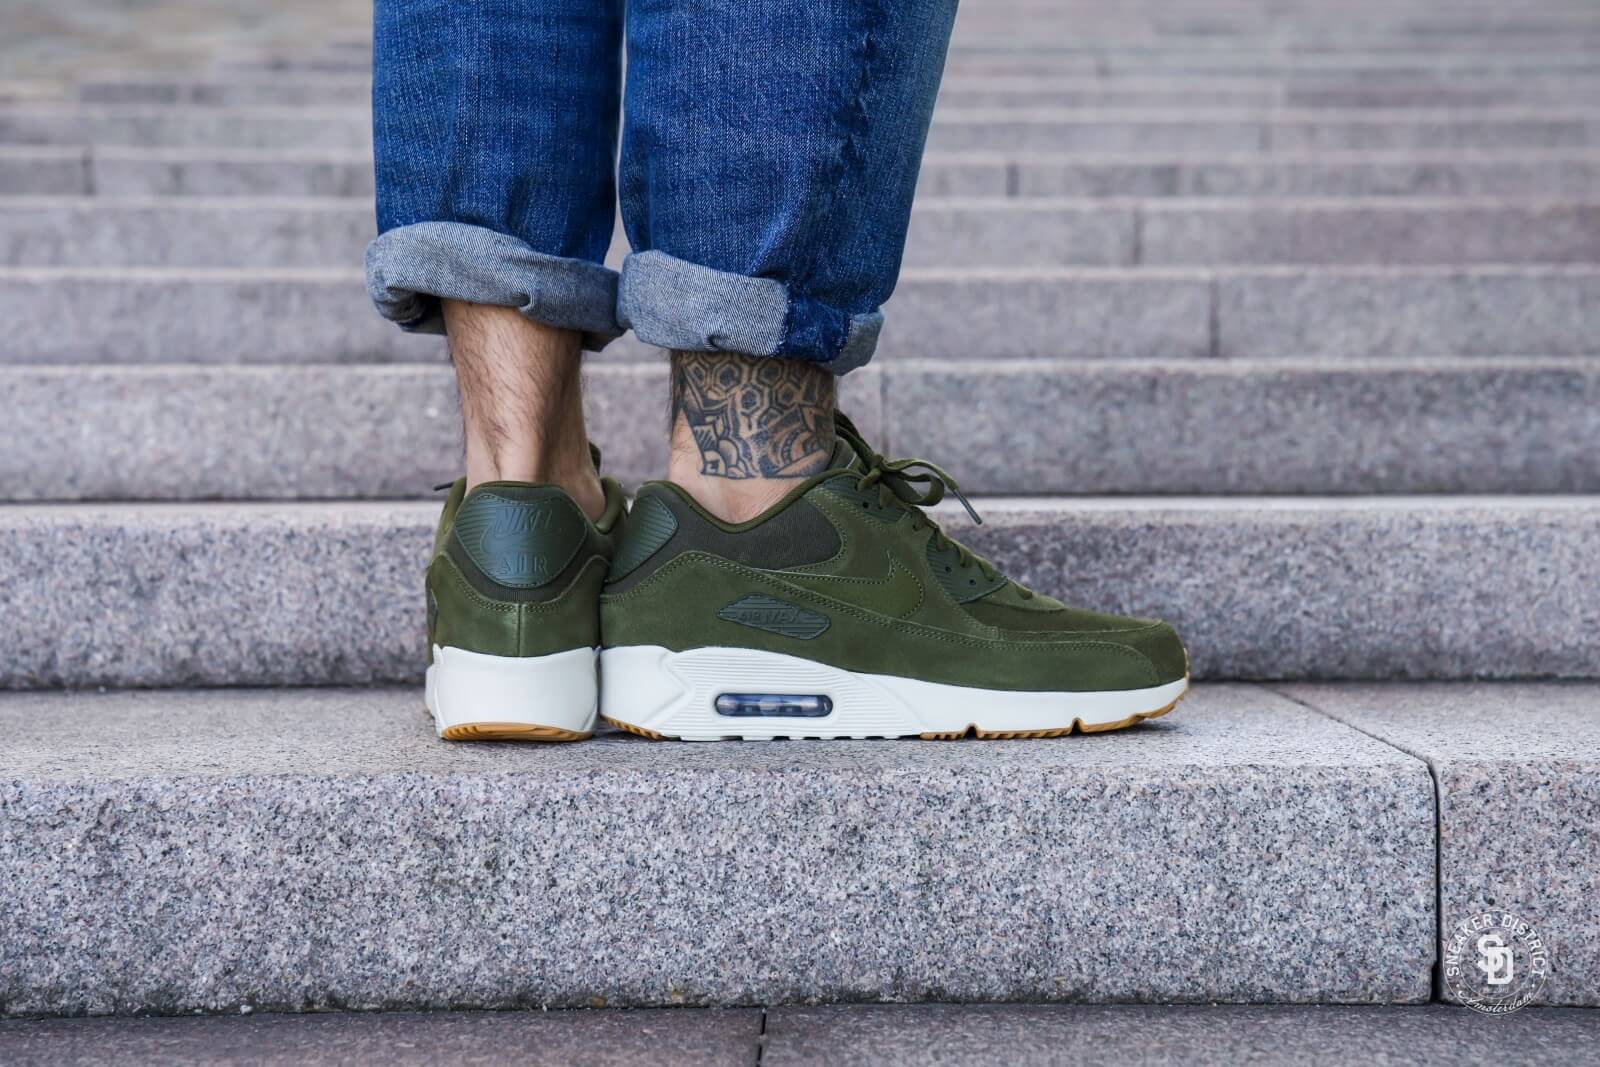 Nike Air Max 90 Ultra 2.0 Leather Olive CanvasLight Bone 924447 301